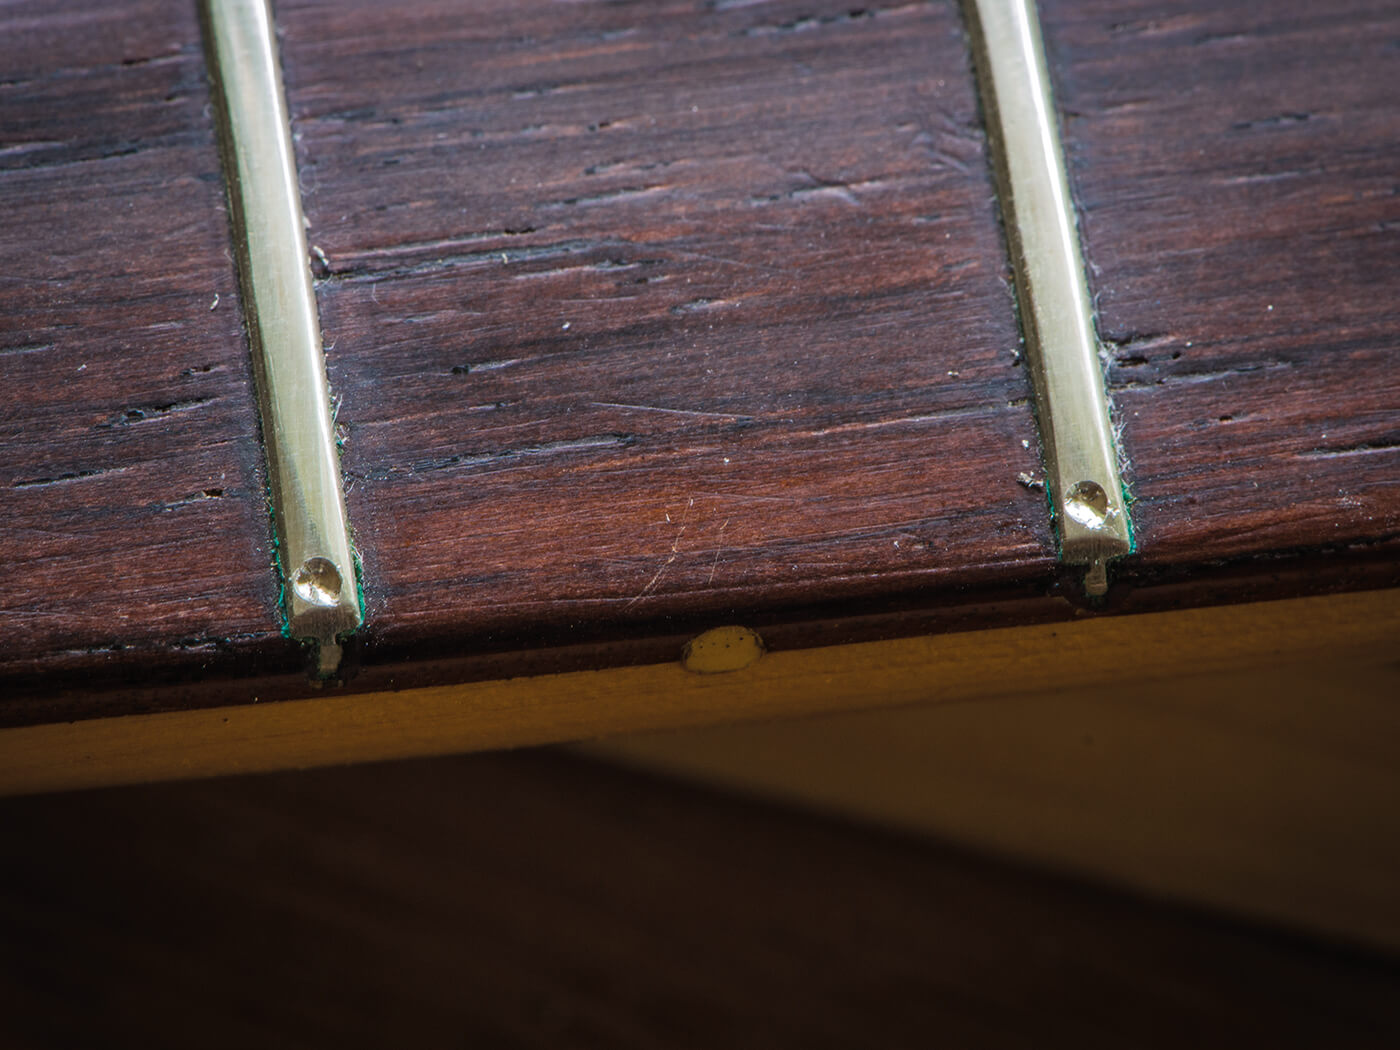 Drilled notches in frets of strat fingerboard